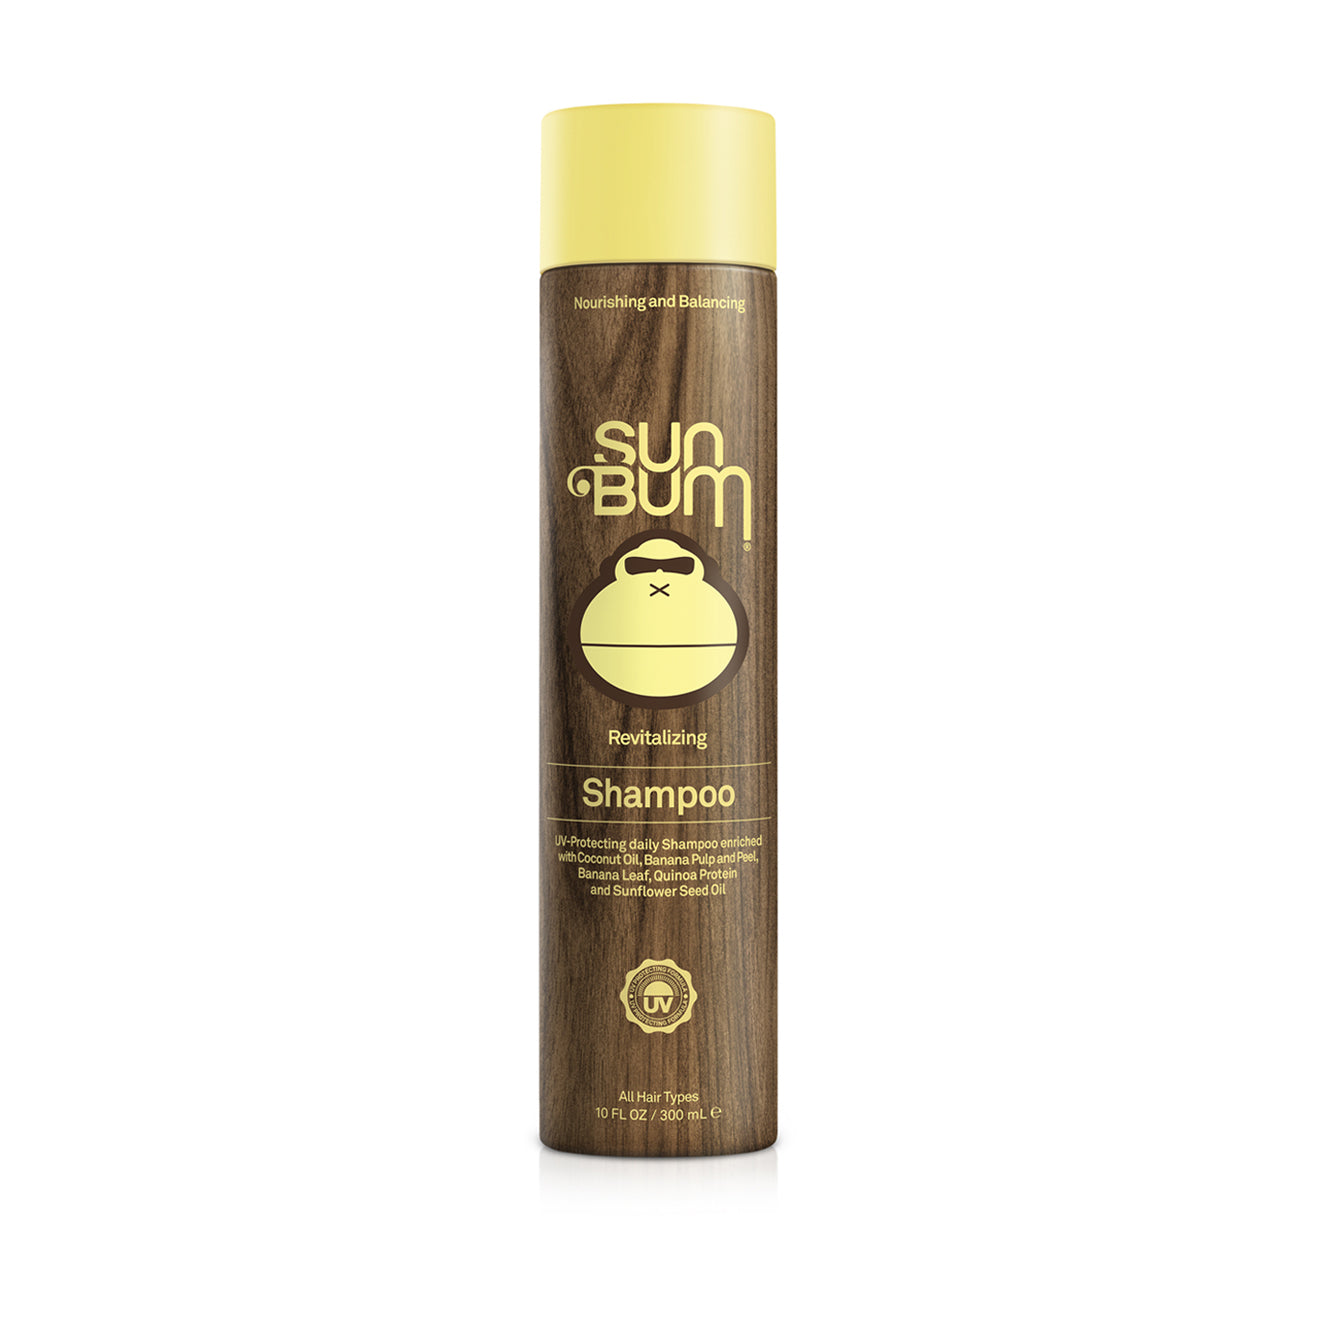 Sun Bum Revitalizing Shampoo 300ml